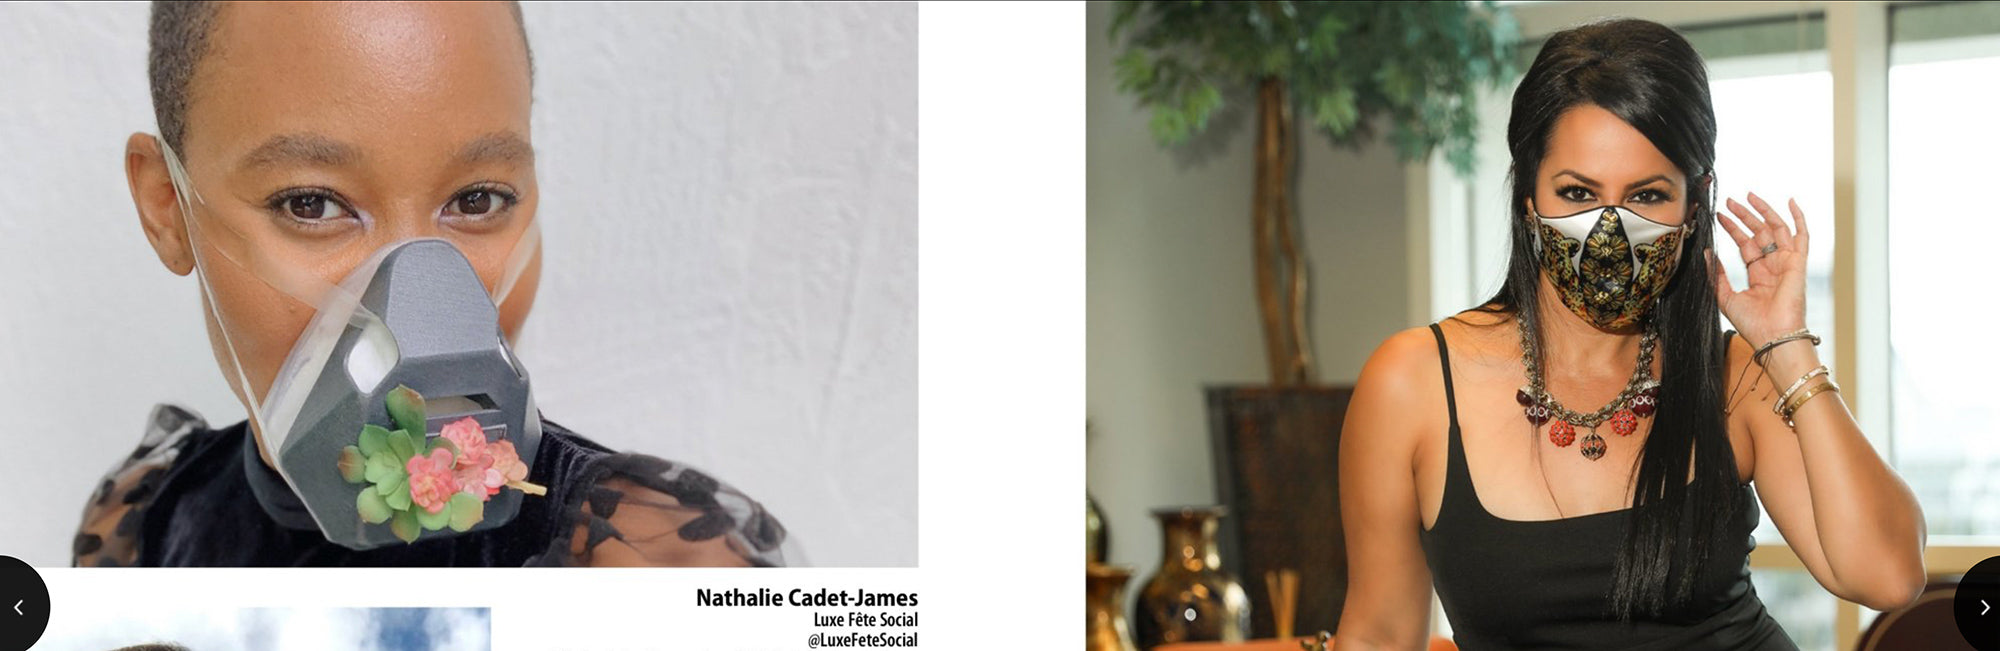 Brickell Magazine Features Nathalie Cadet-James Wearing ORM